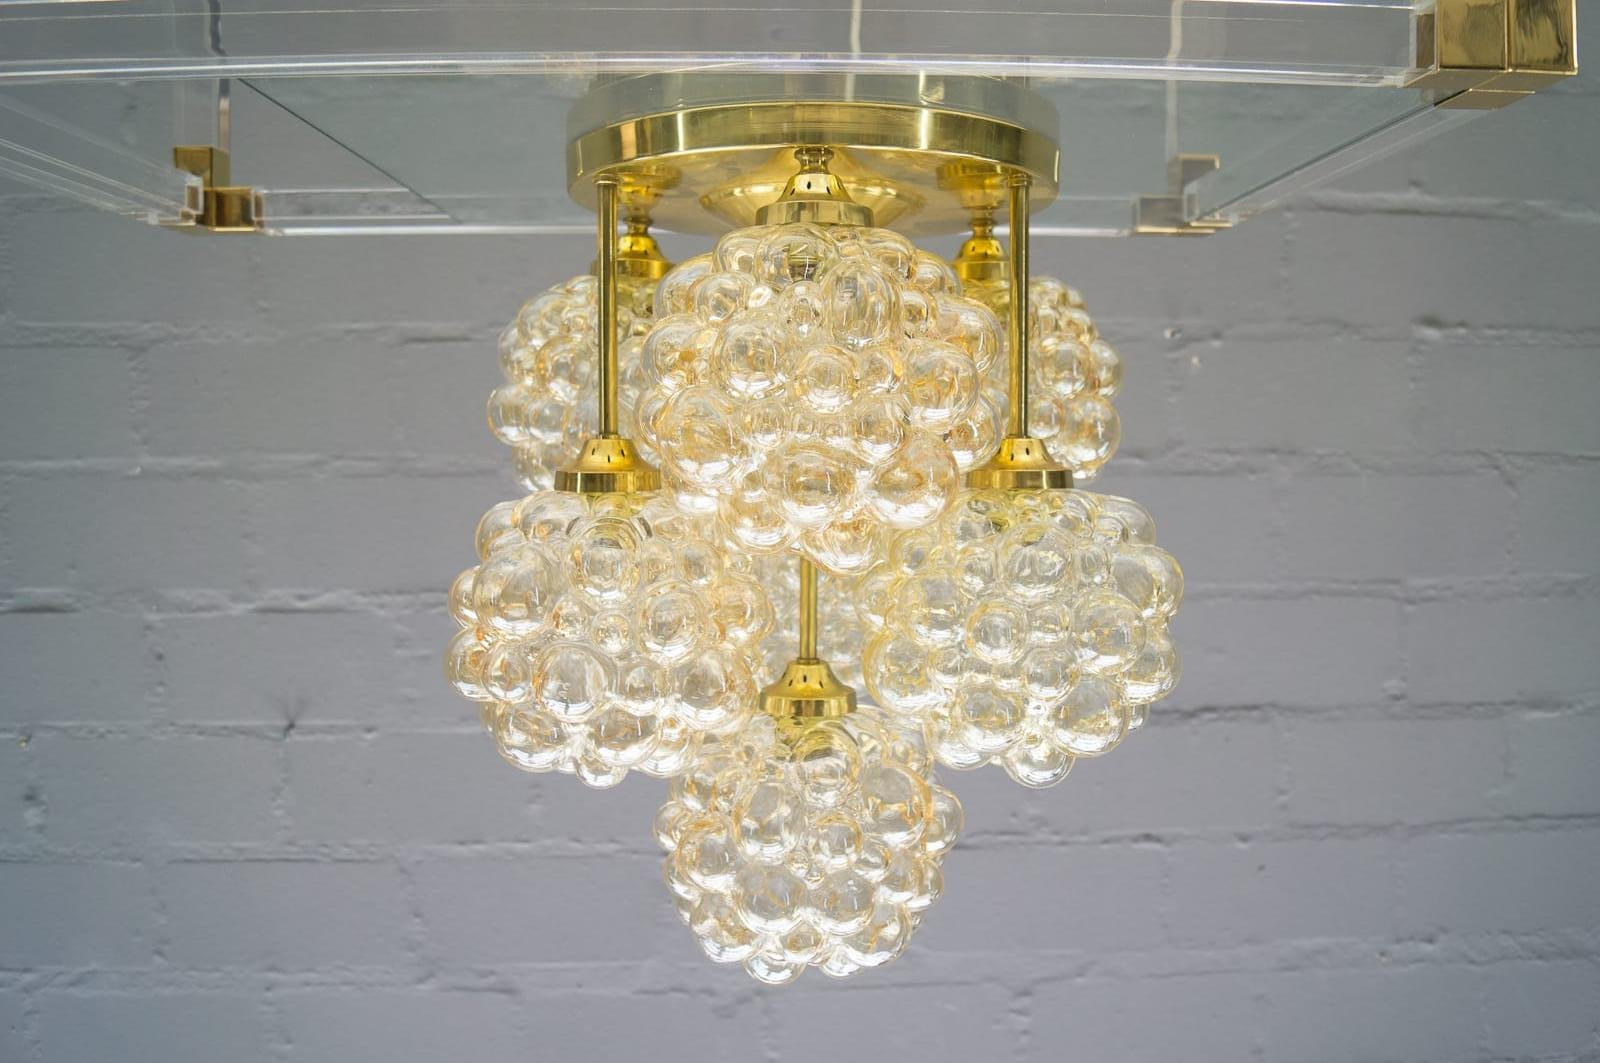 Gold bubble glass ceiling light by helena tynell for limburg 1960s gold bubble glass ceiling light by helena tynell for limburg 1960s aloadofball Images